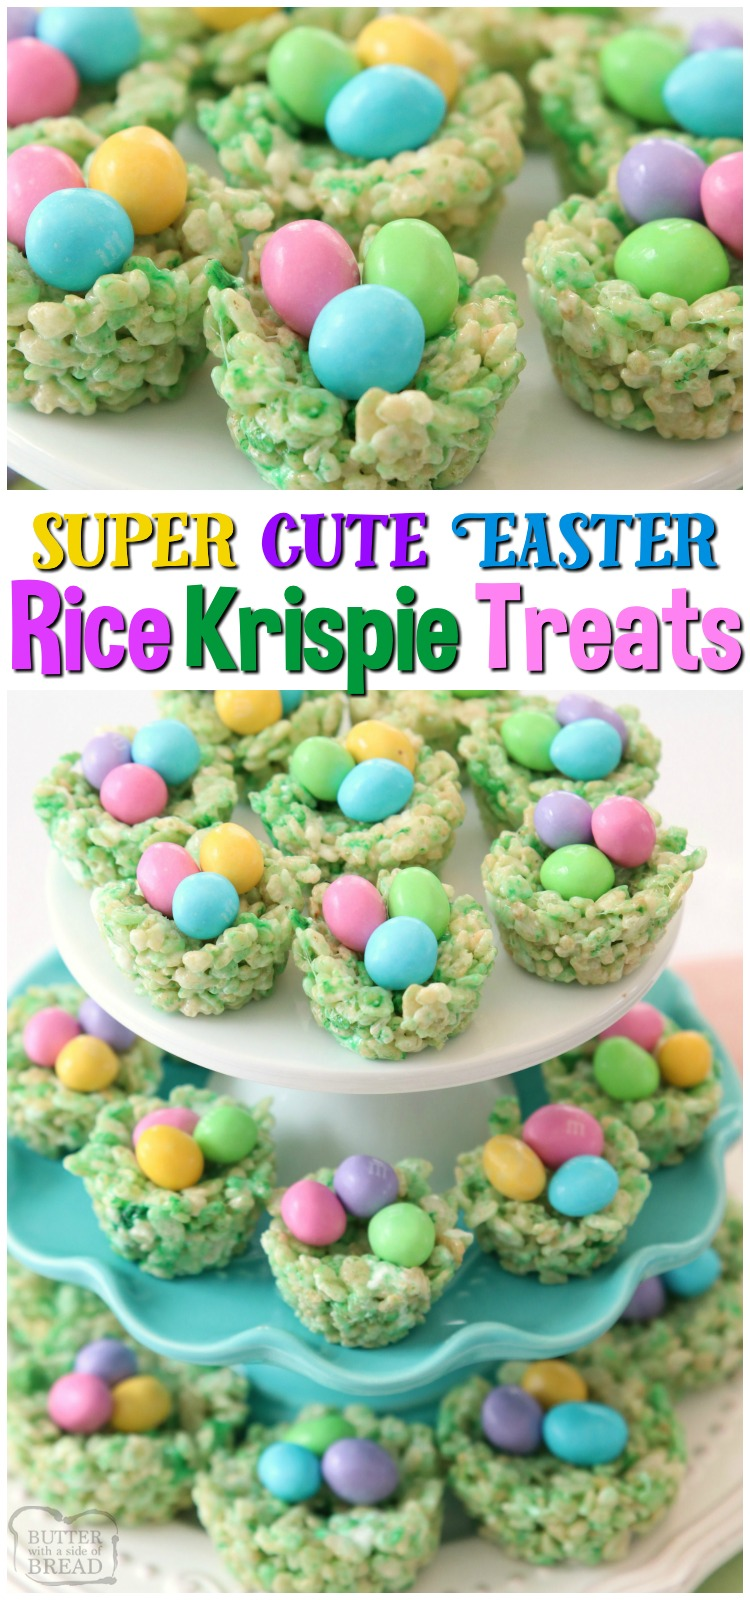 Easter Rice Krispie Treats made with classic marshmallow treat ingredients that look like cute Easter baskets! Simple, fun recipe for a festive Easter dessert. #Easter #marshmallows #krispie #treats #dessert #Spring #recipe #food from BUTTER WITH A SIDE OF BREAD